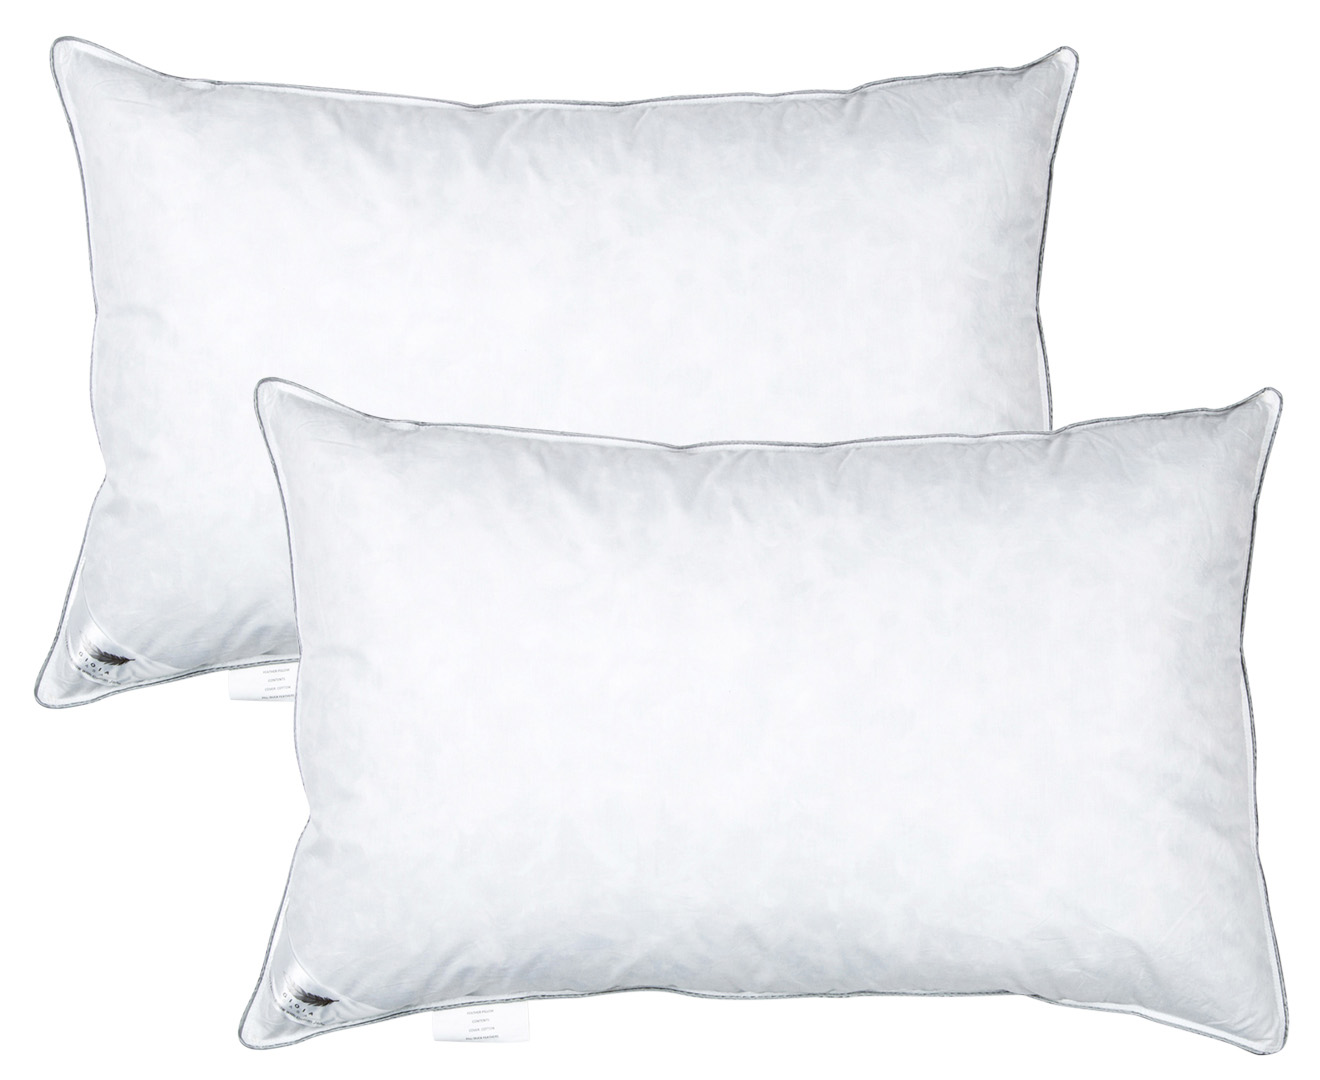 Gioia Casa Duck Feather Pillow 1kg Fill Twin Pack